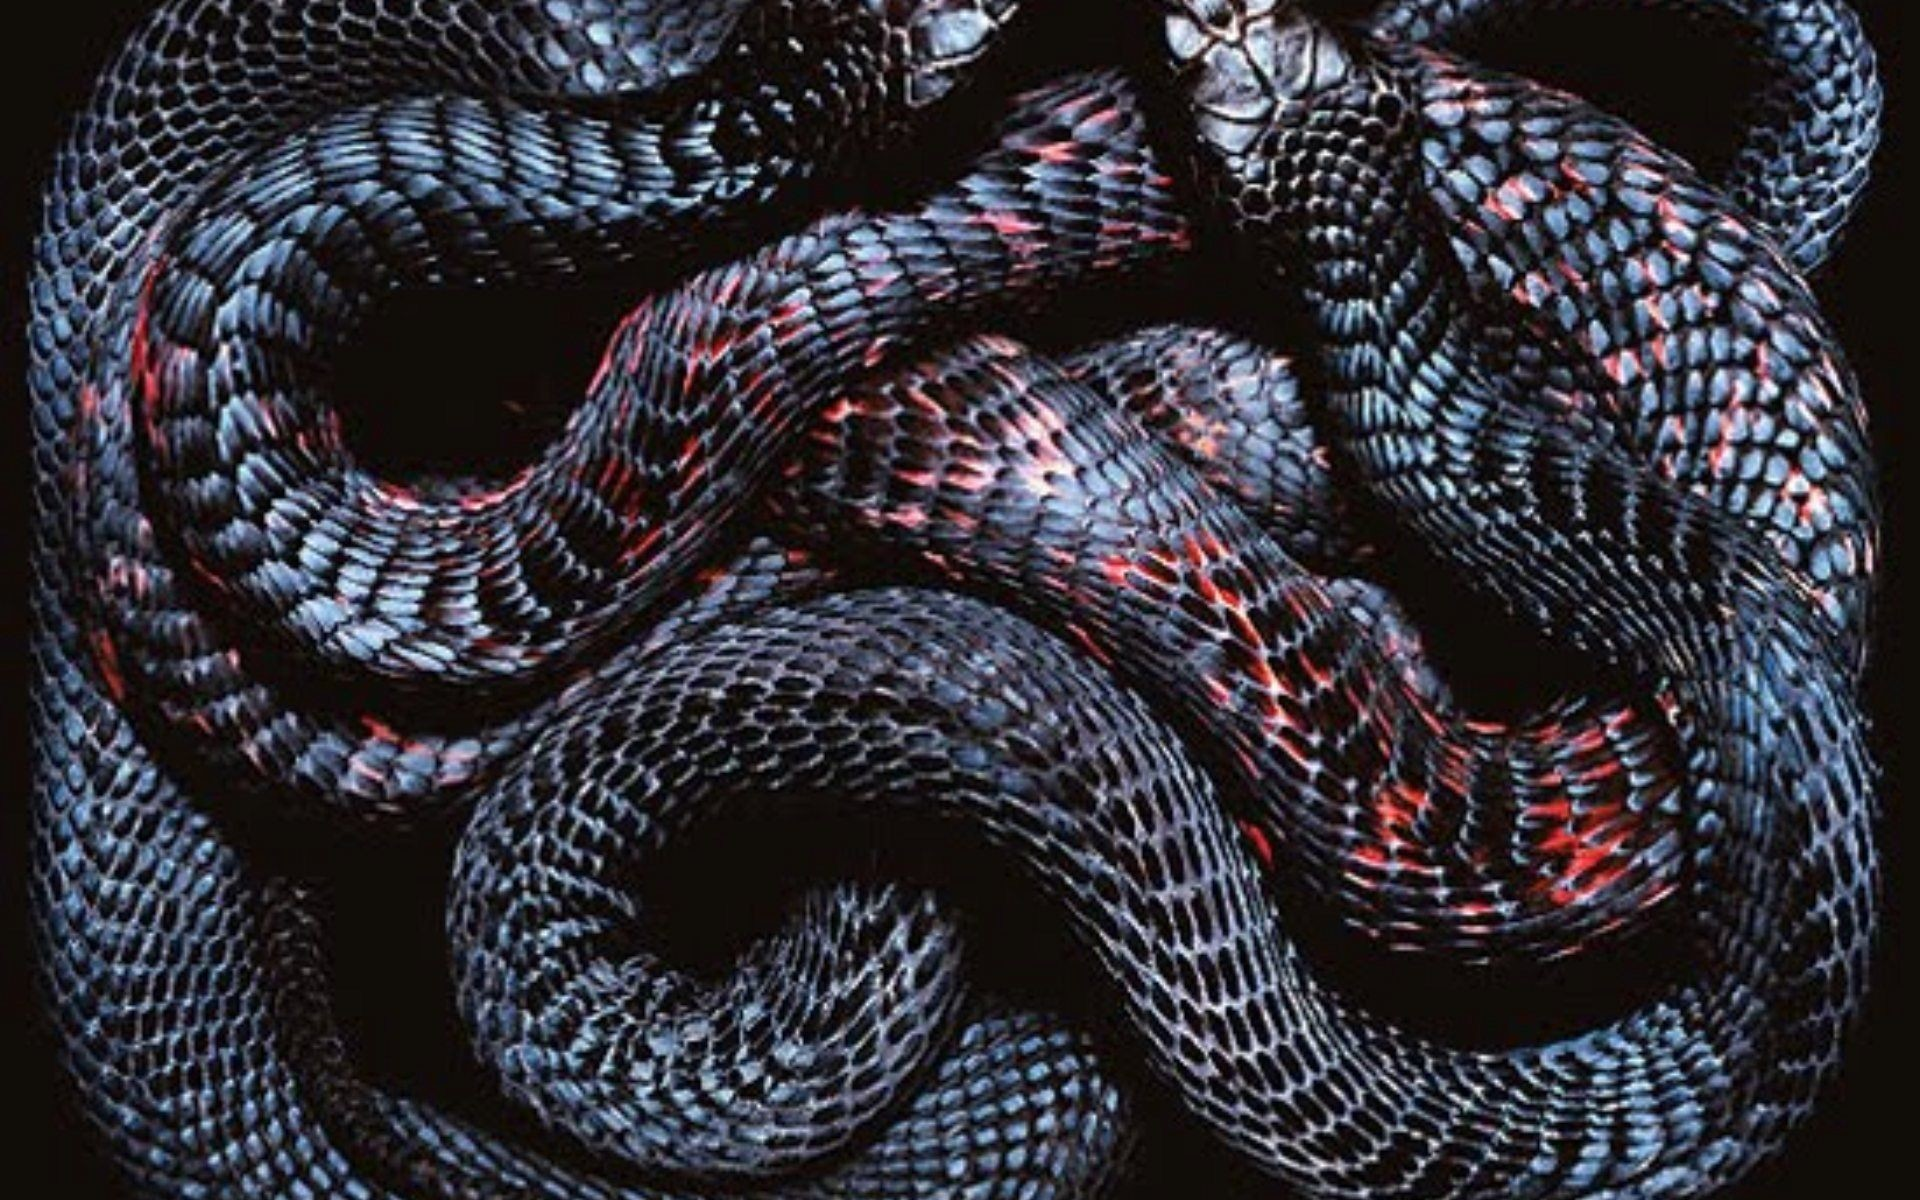 Res: 1920x1200, undefined Black Snake Wallpapers (43 Wallpapers) | Adorable Wallpapers